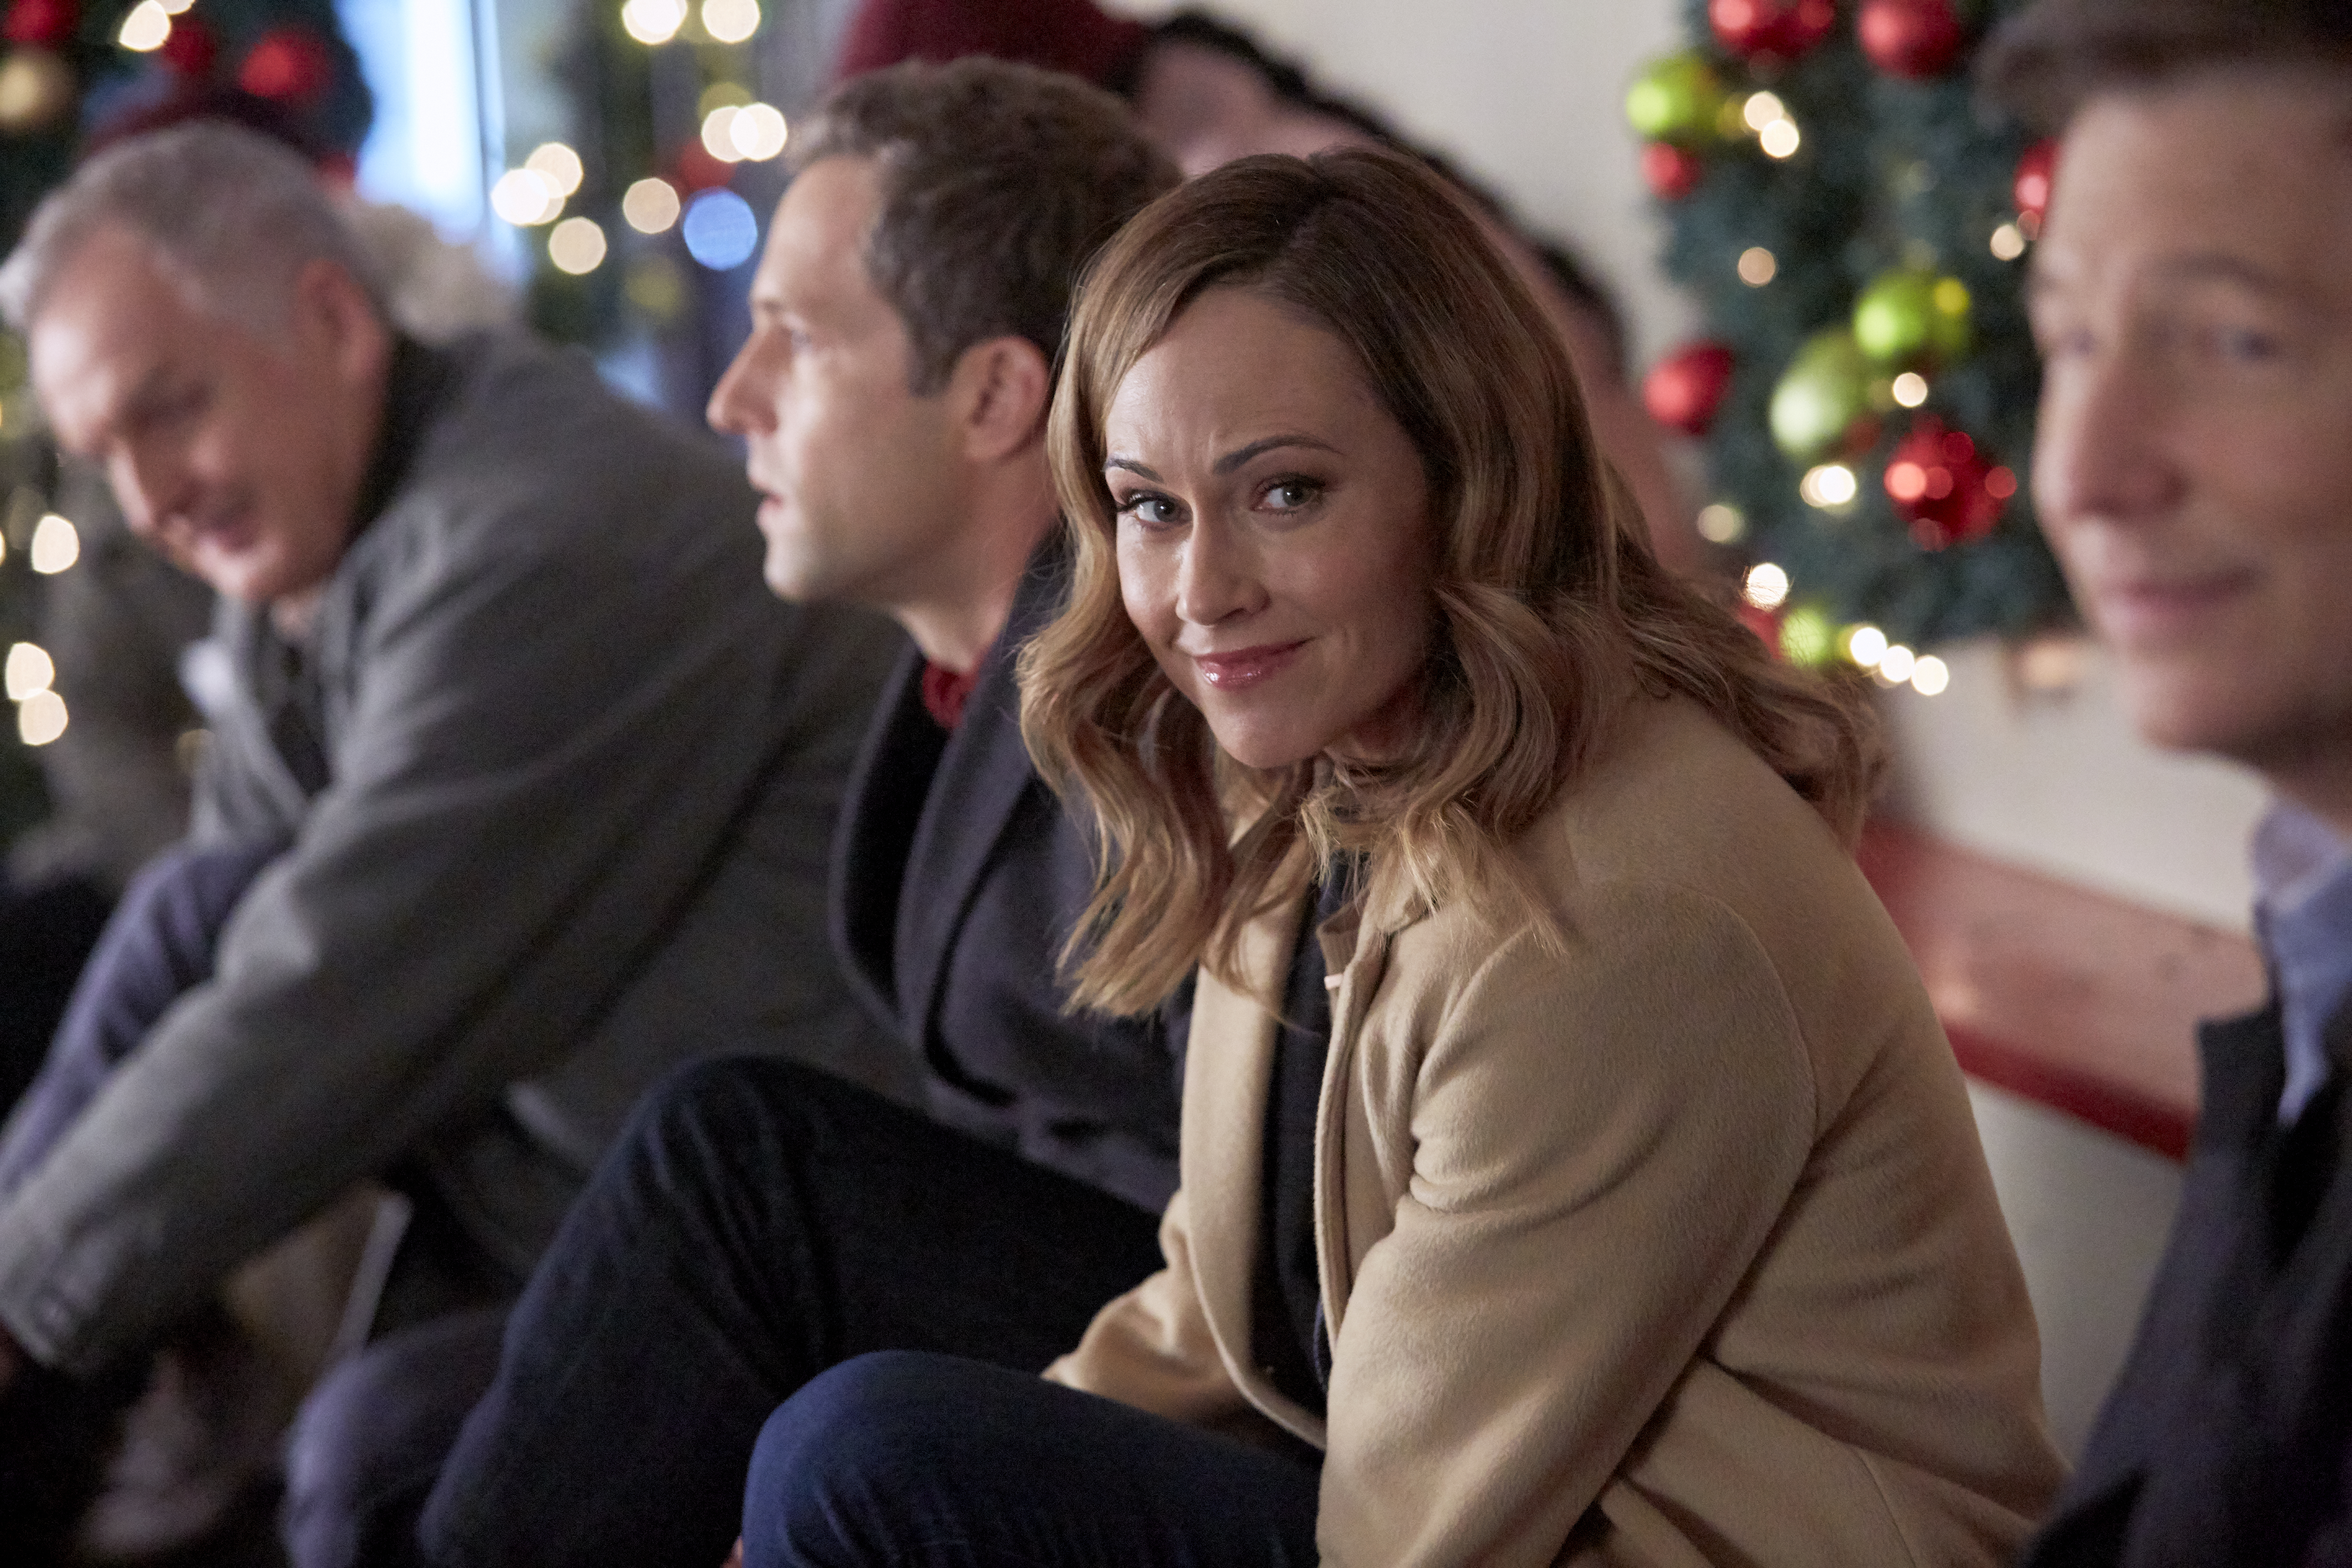 Reunited at Christmas: Cast, Discussion, Times & Photos | Heavy.com